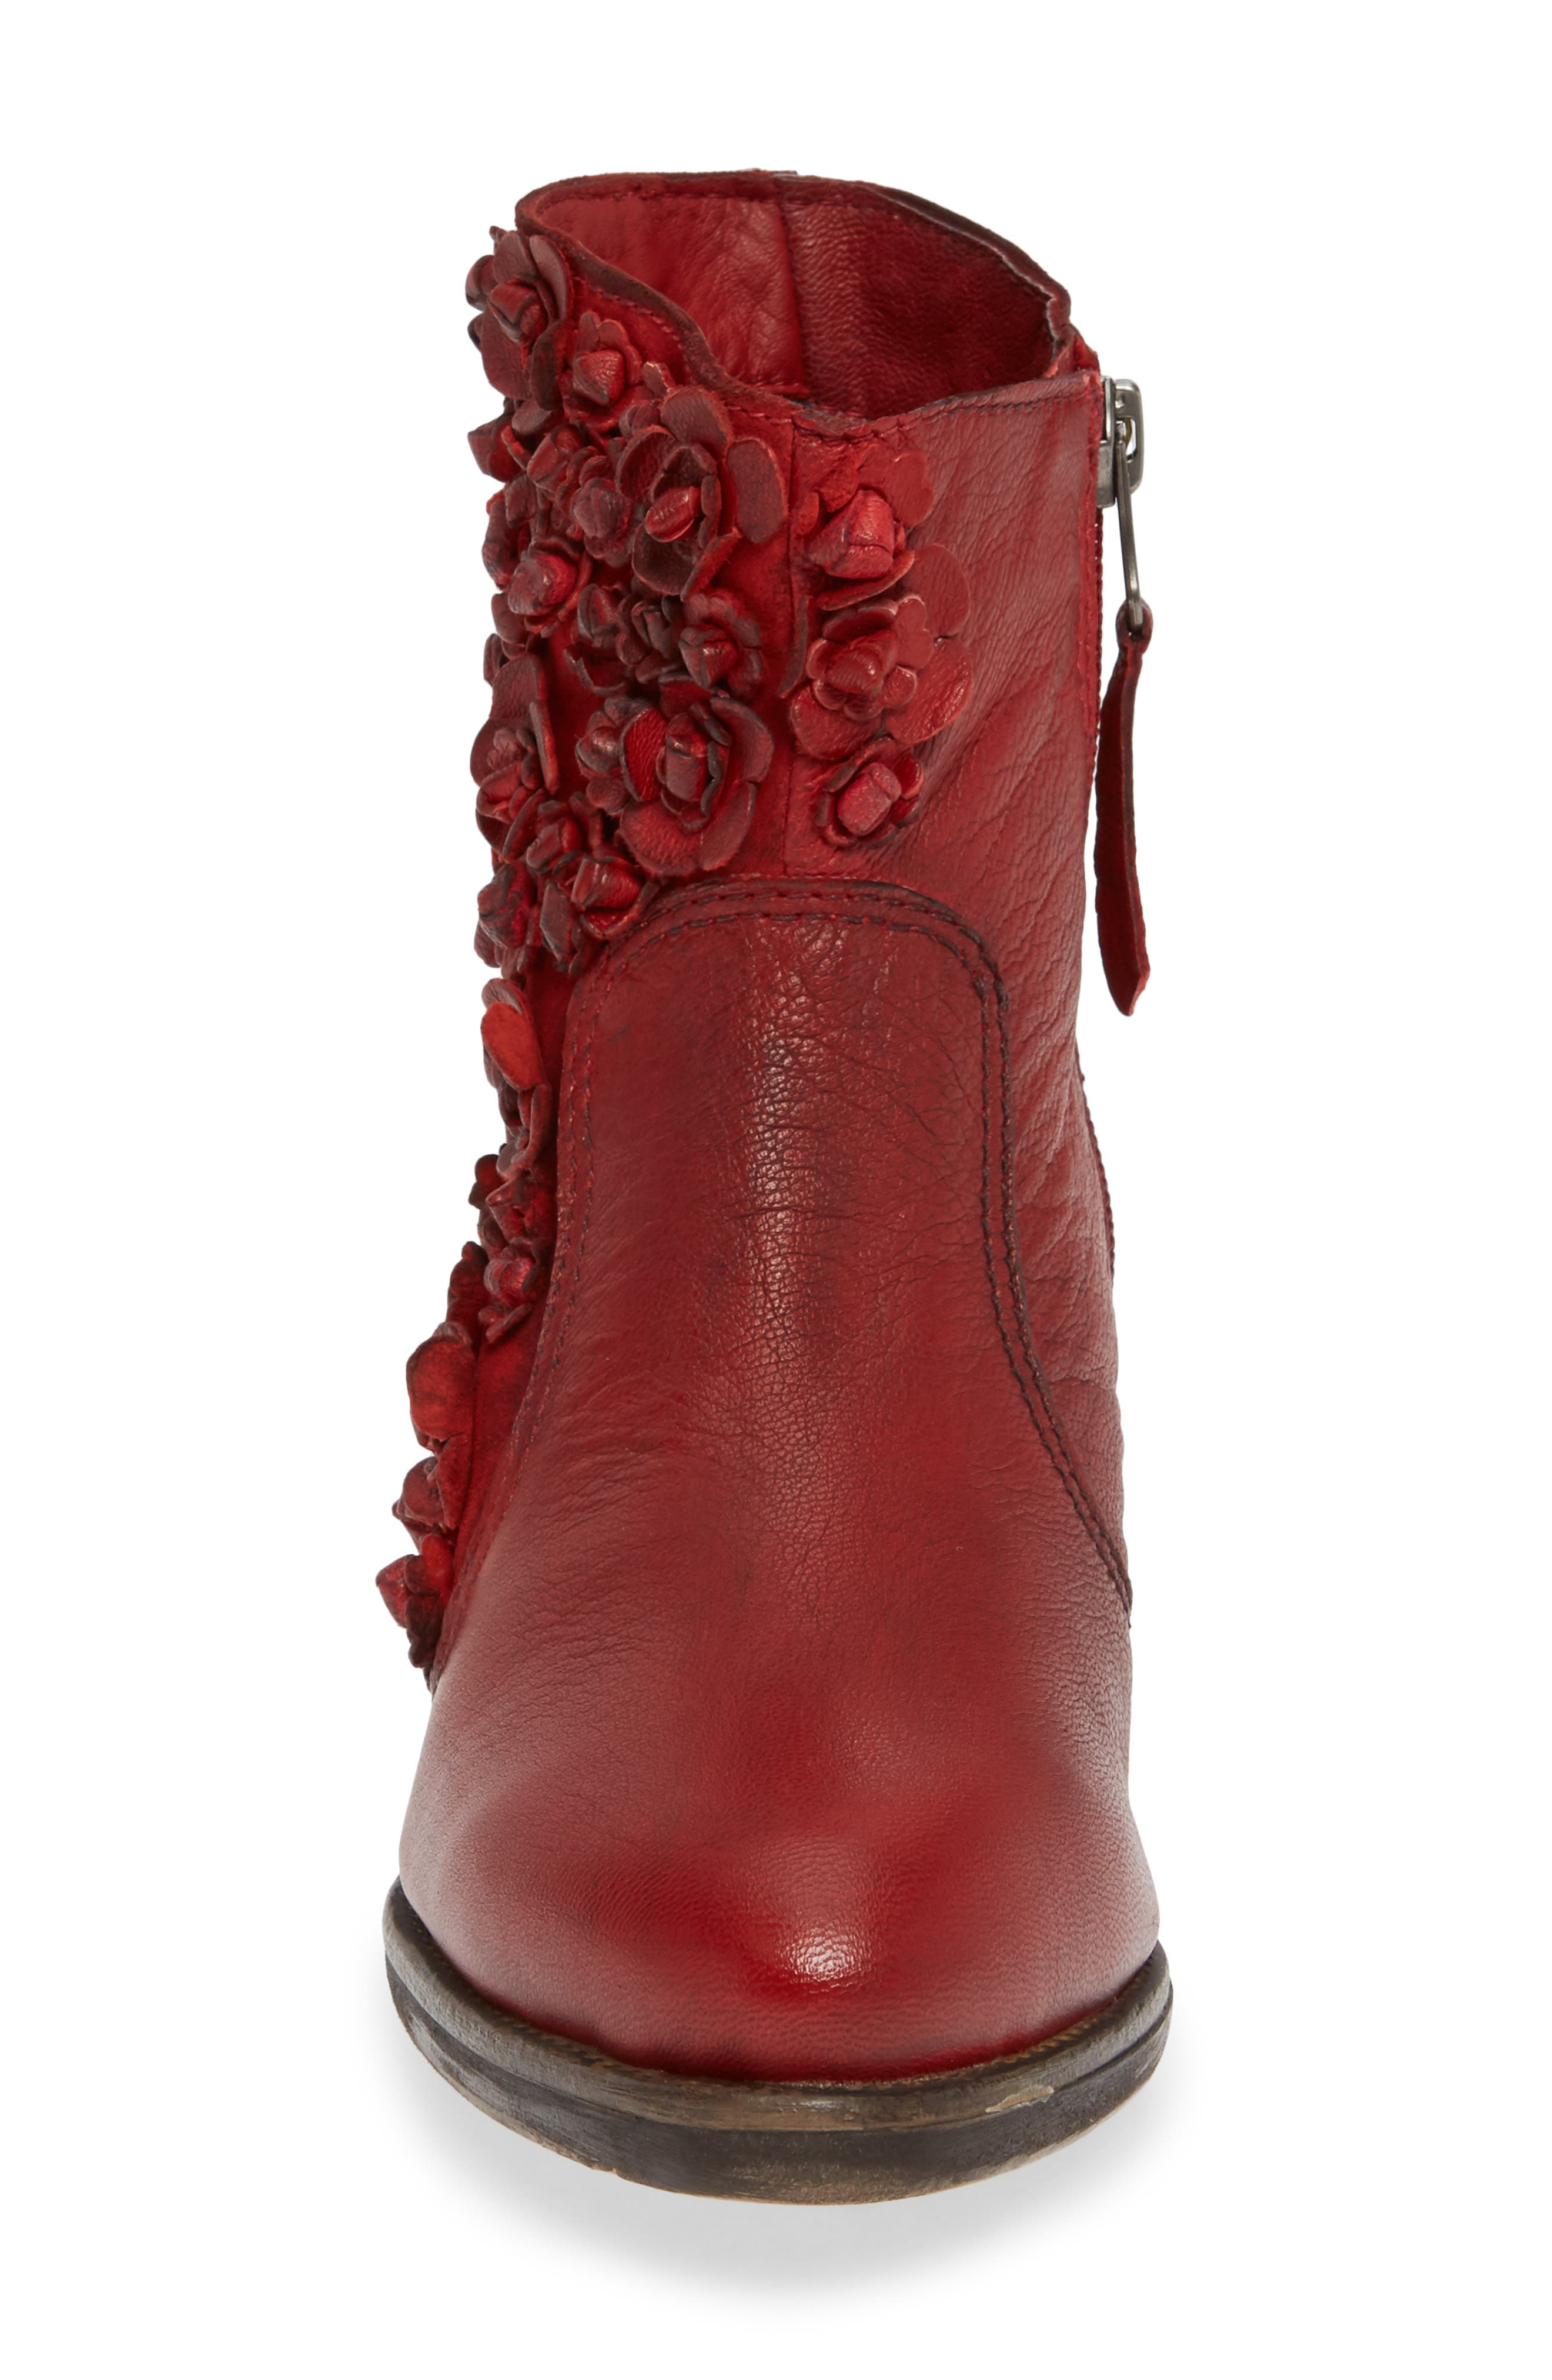 Sapphire Bootie,                             Alternate thumbnail 4, color,                             RED LEATHER